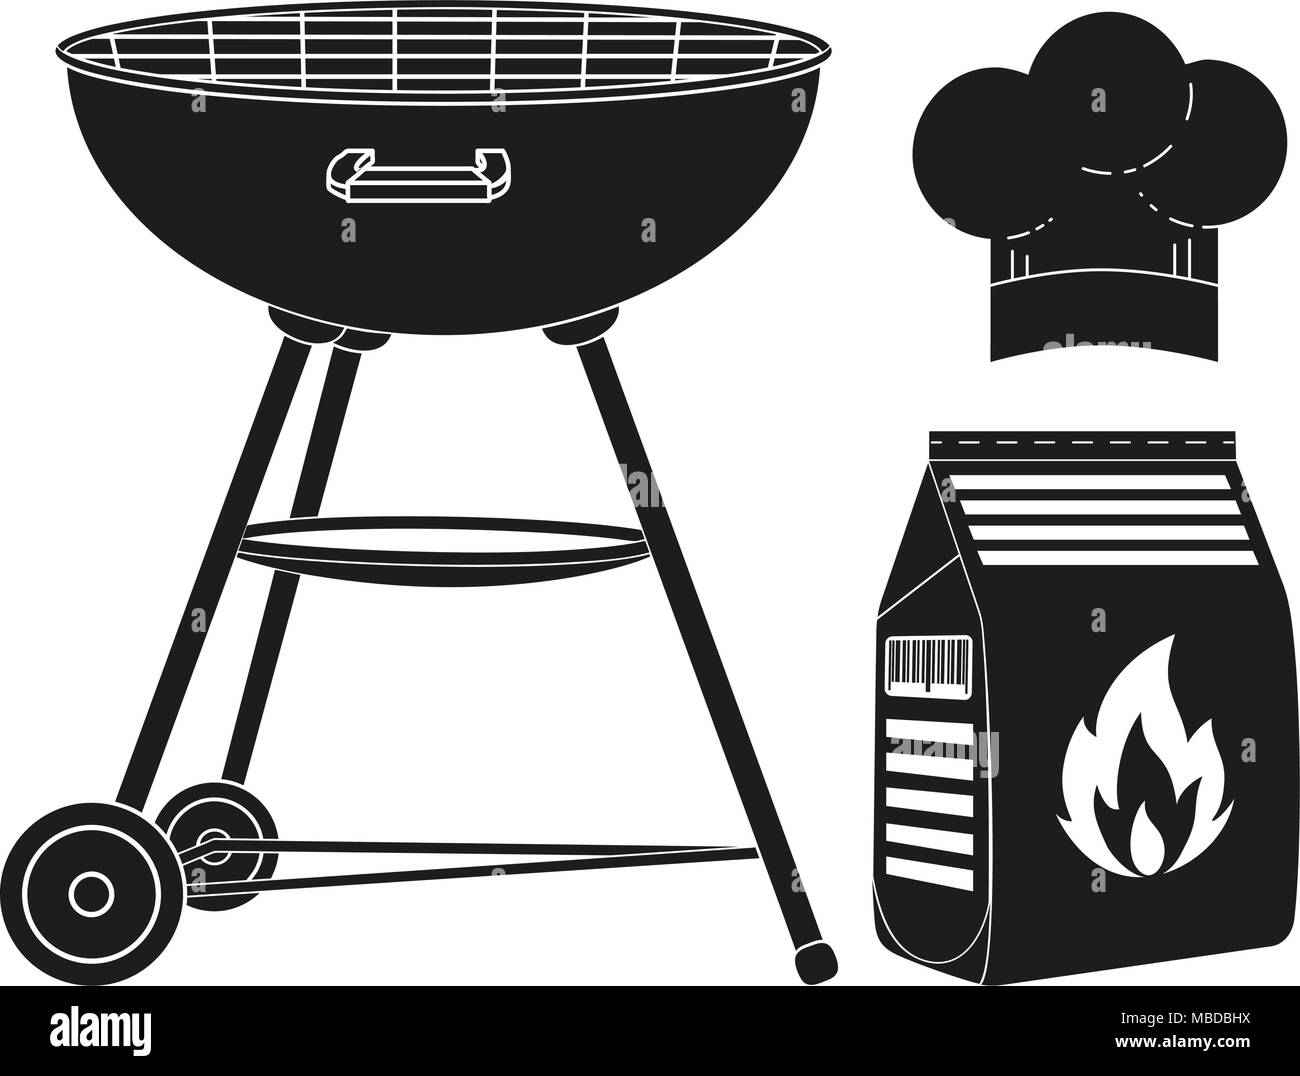 Black and white outdoors cooking silhouette set. BBQ grill, coal bag ...